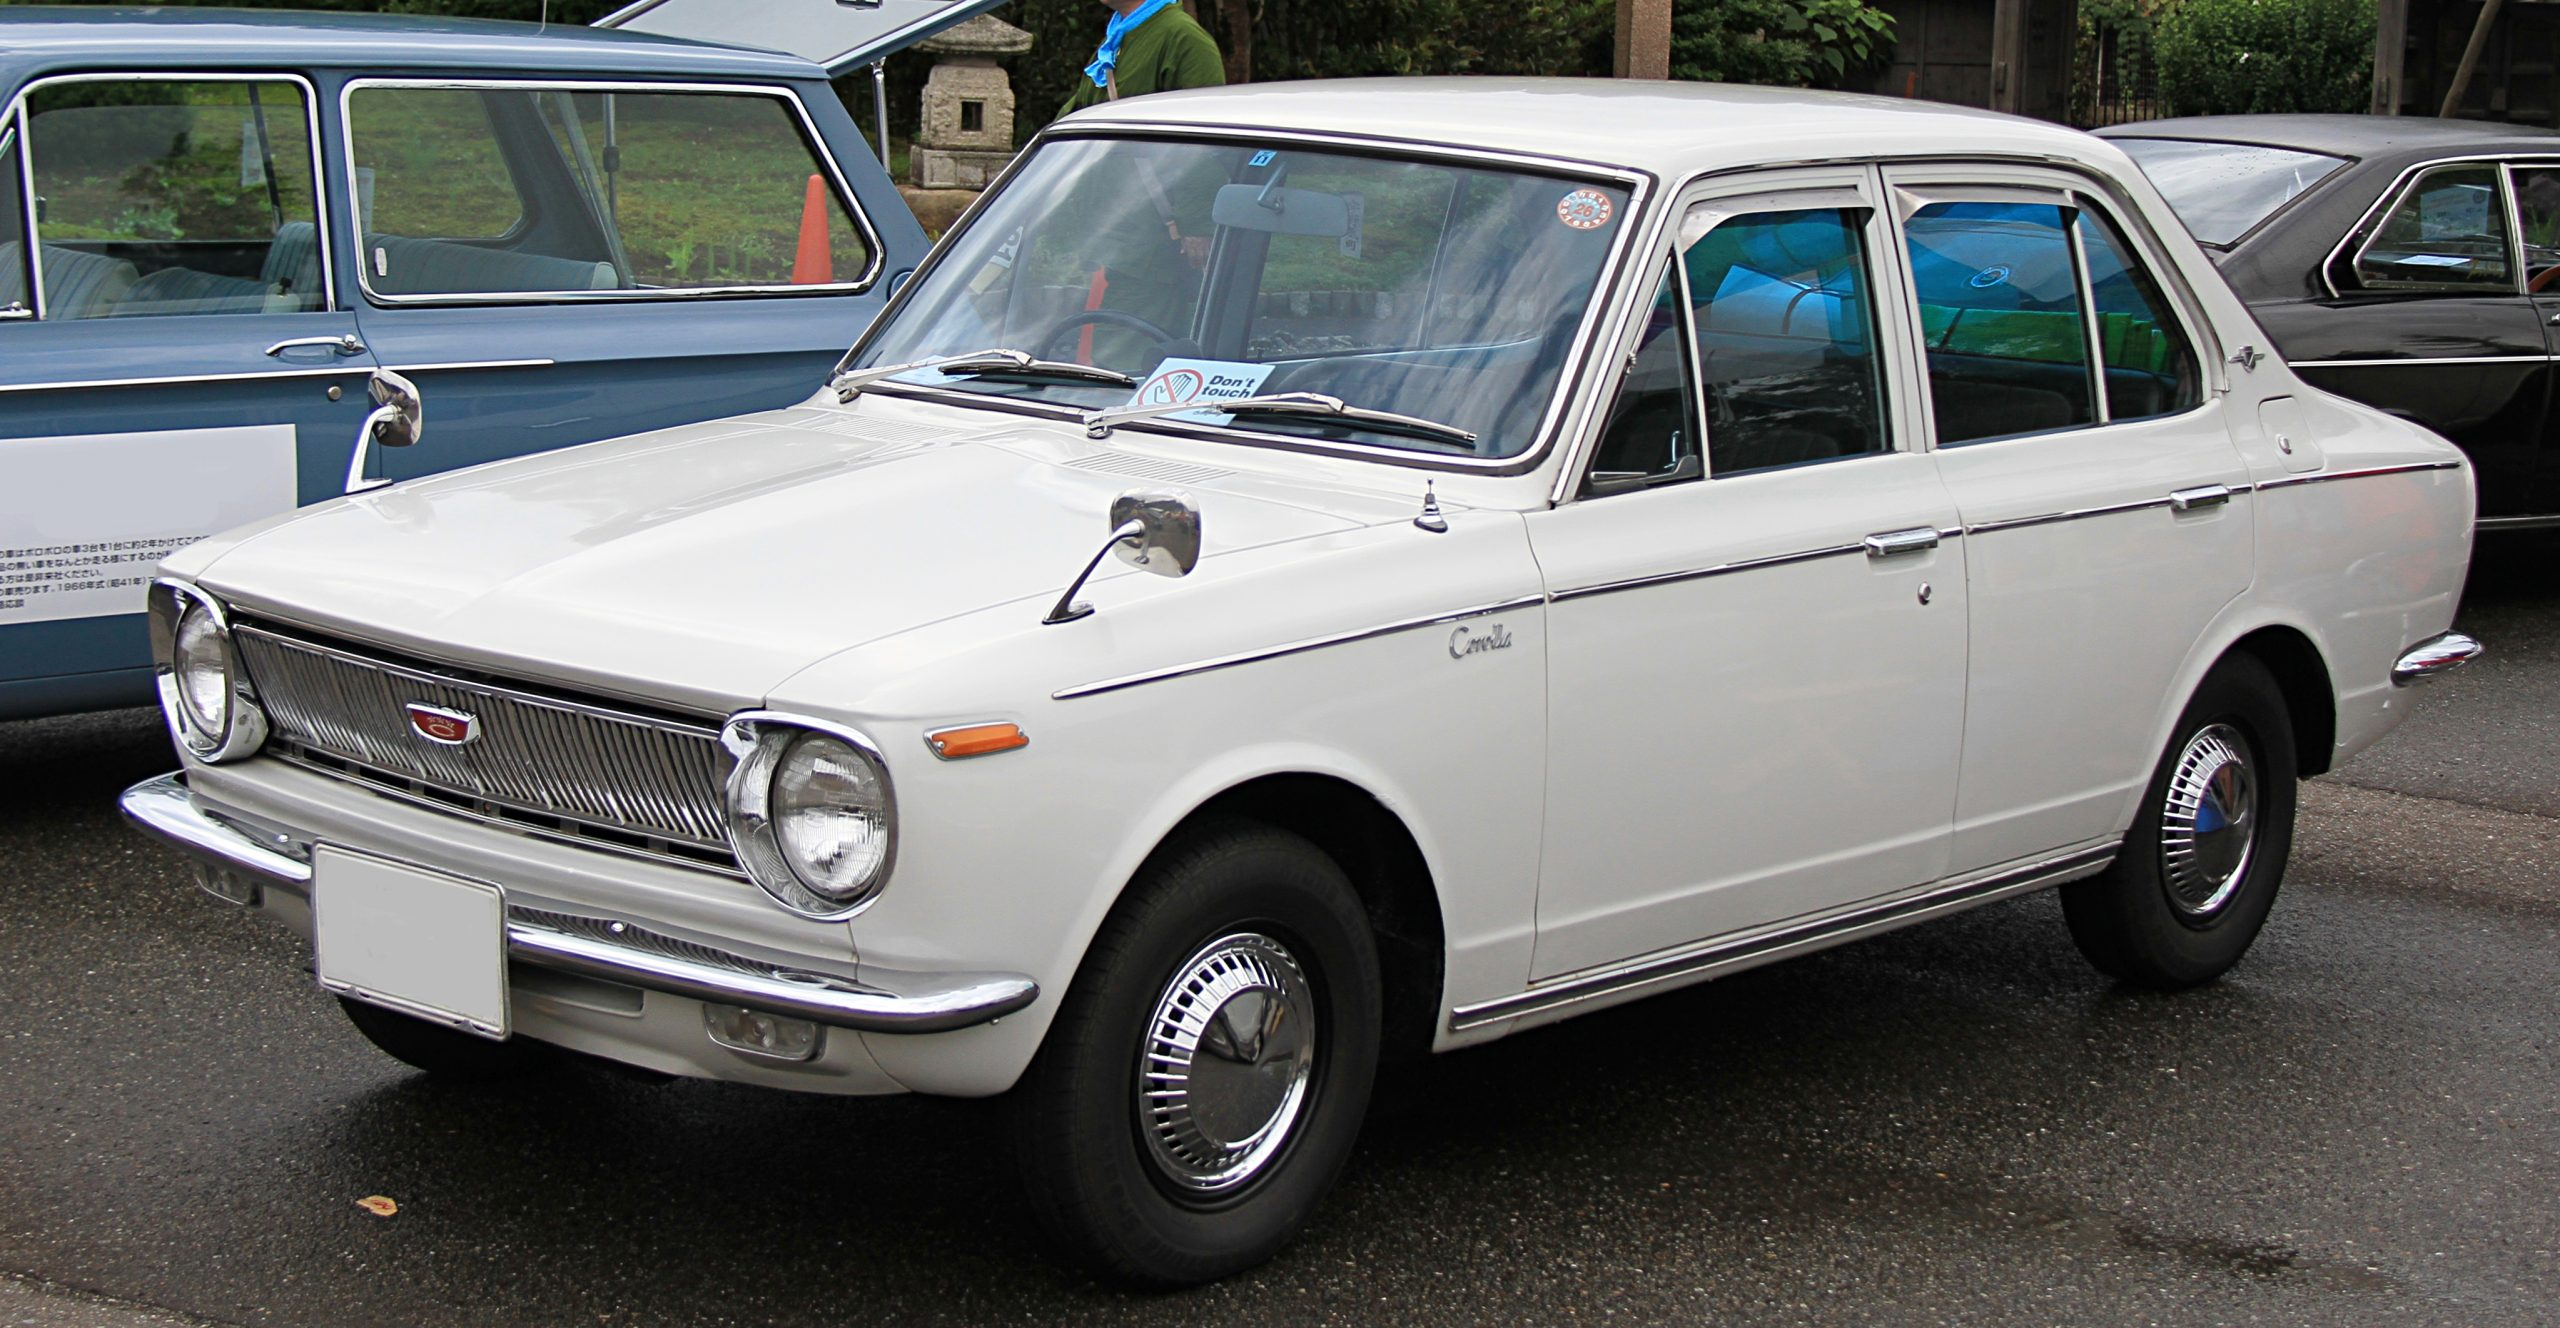 A Brief History of the Toyota Corolla